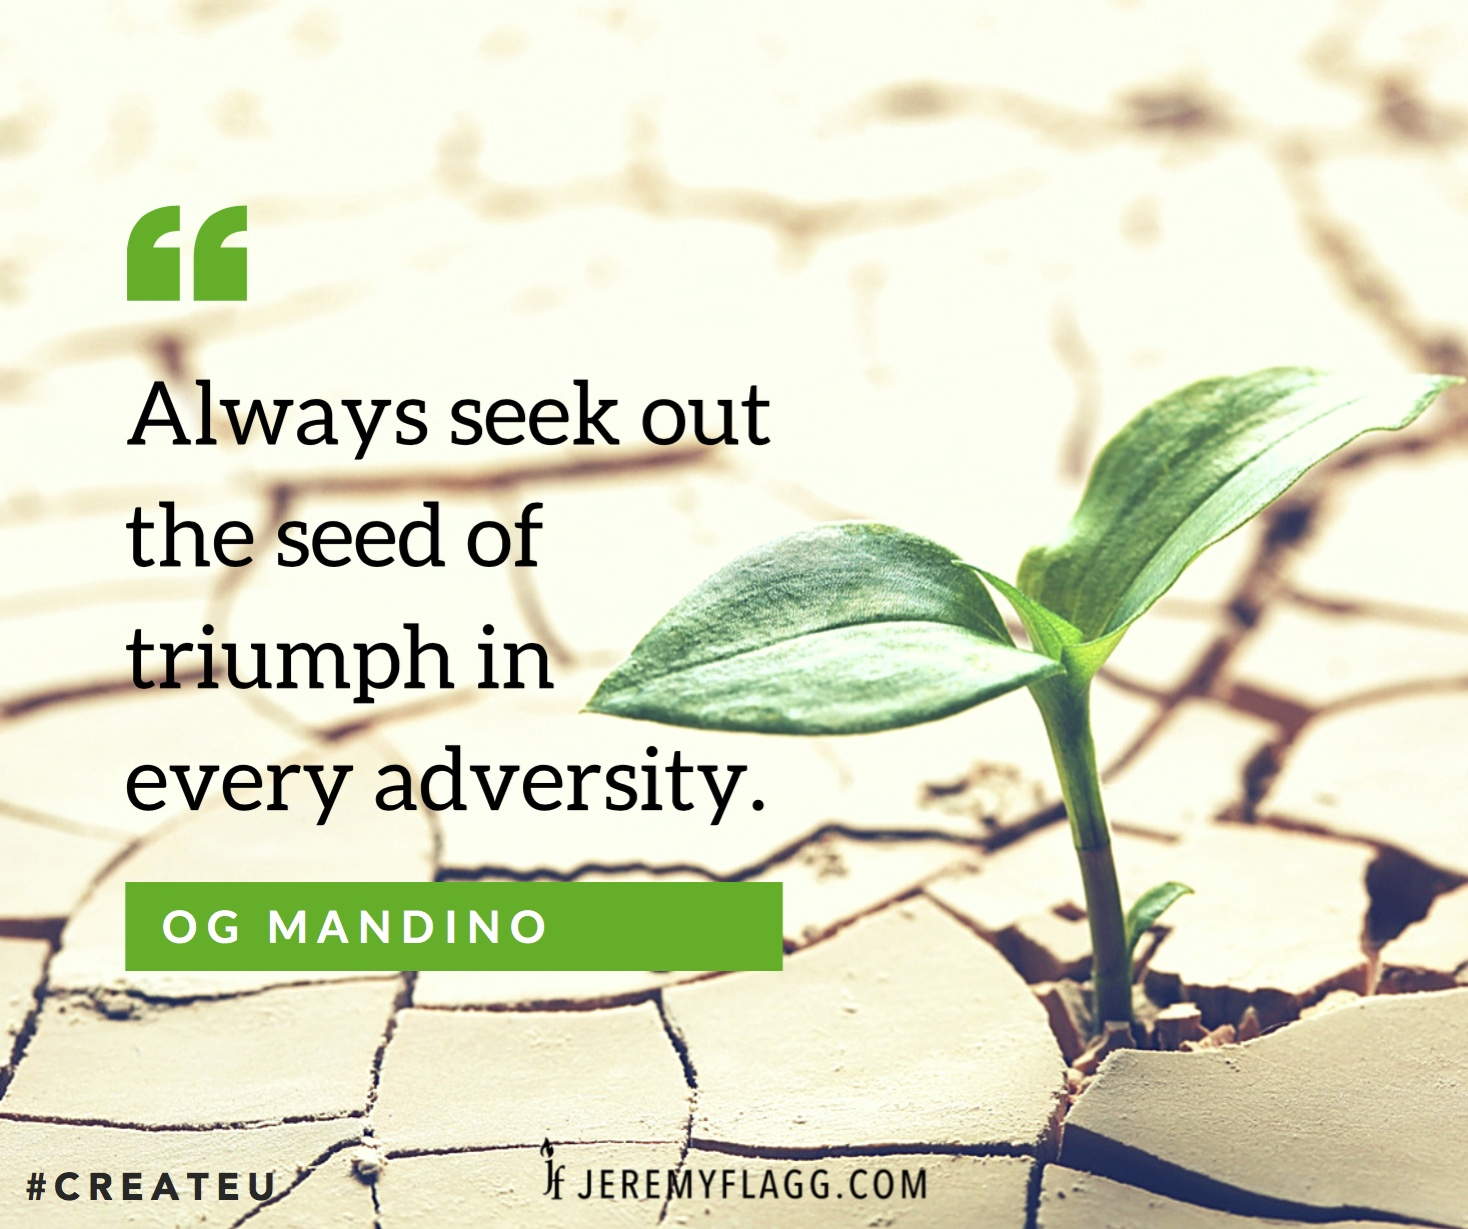 Triumph-in-adversity-Og-Mandino-quote-FB